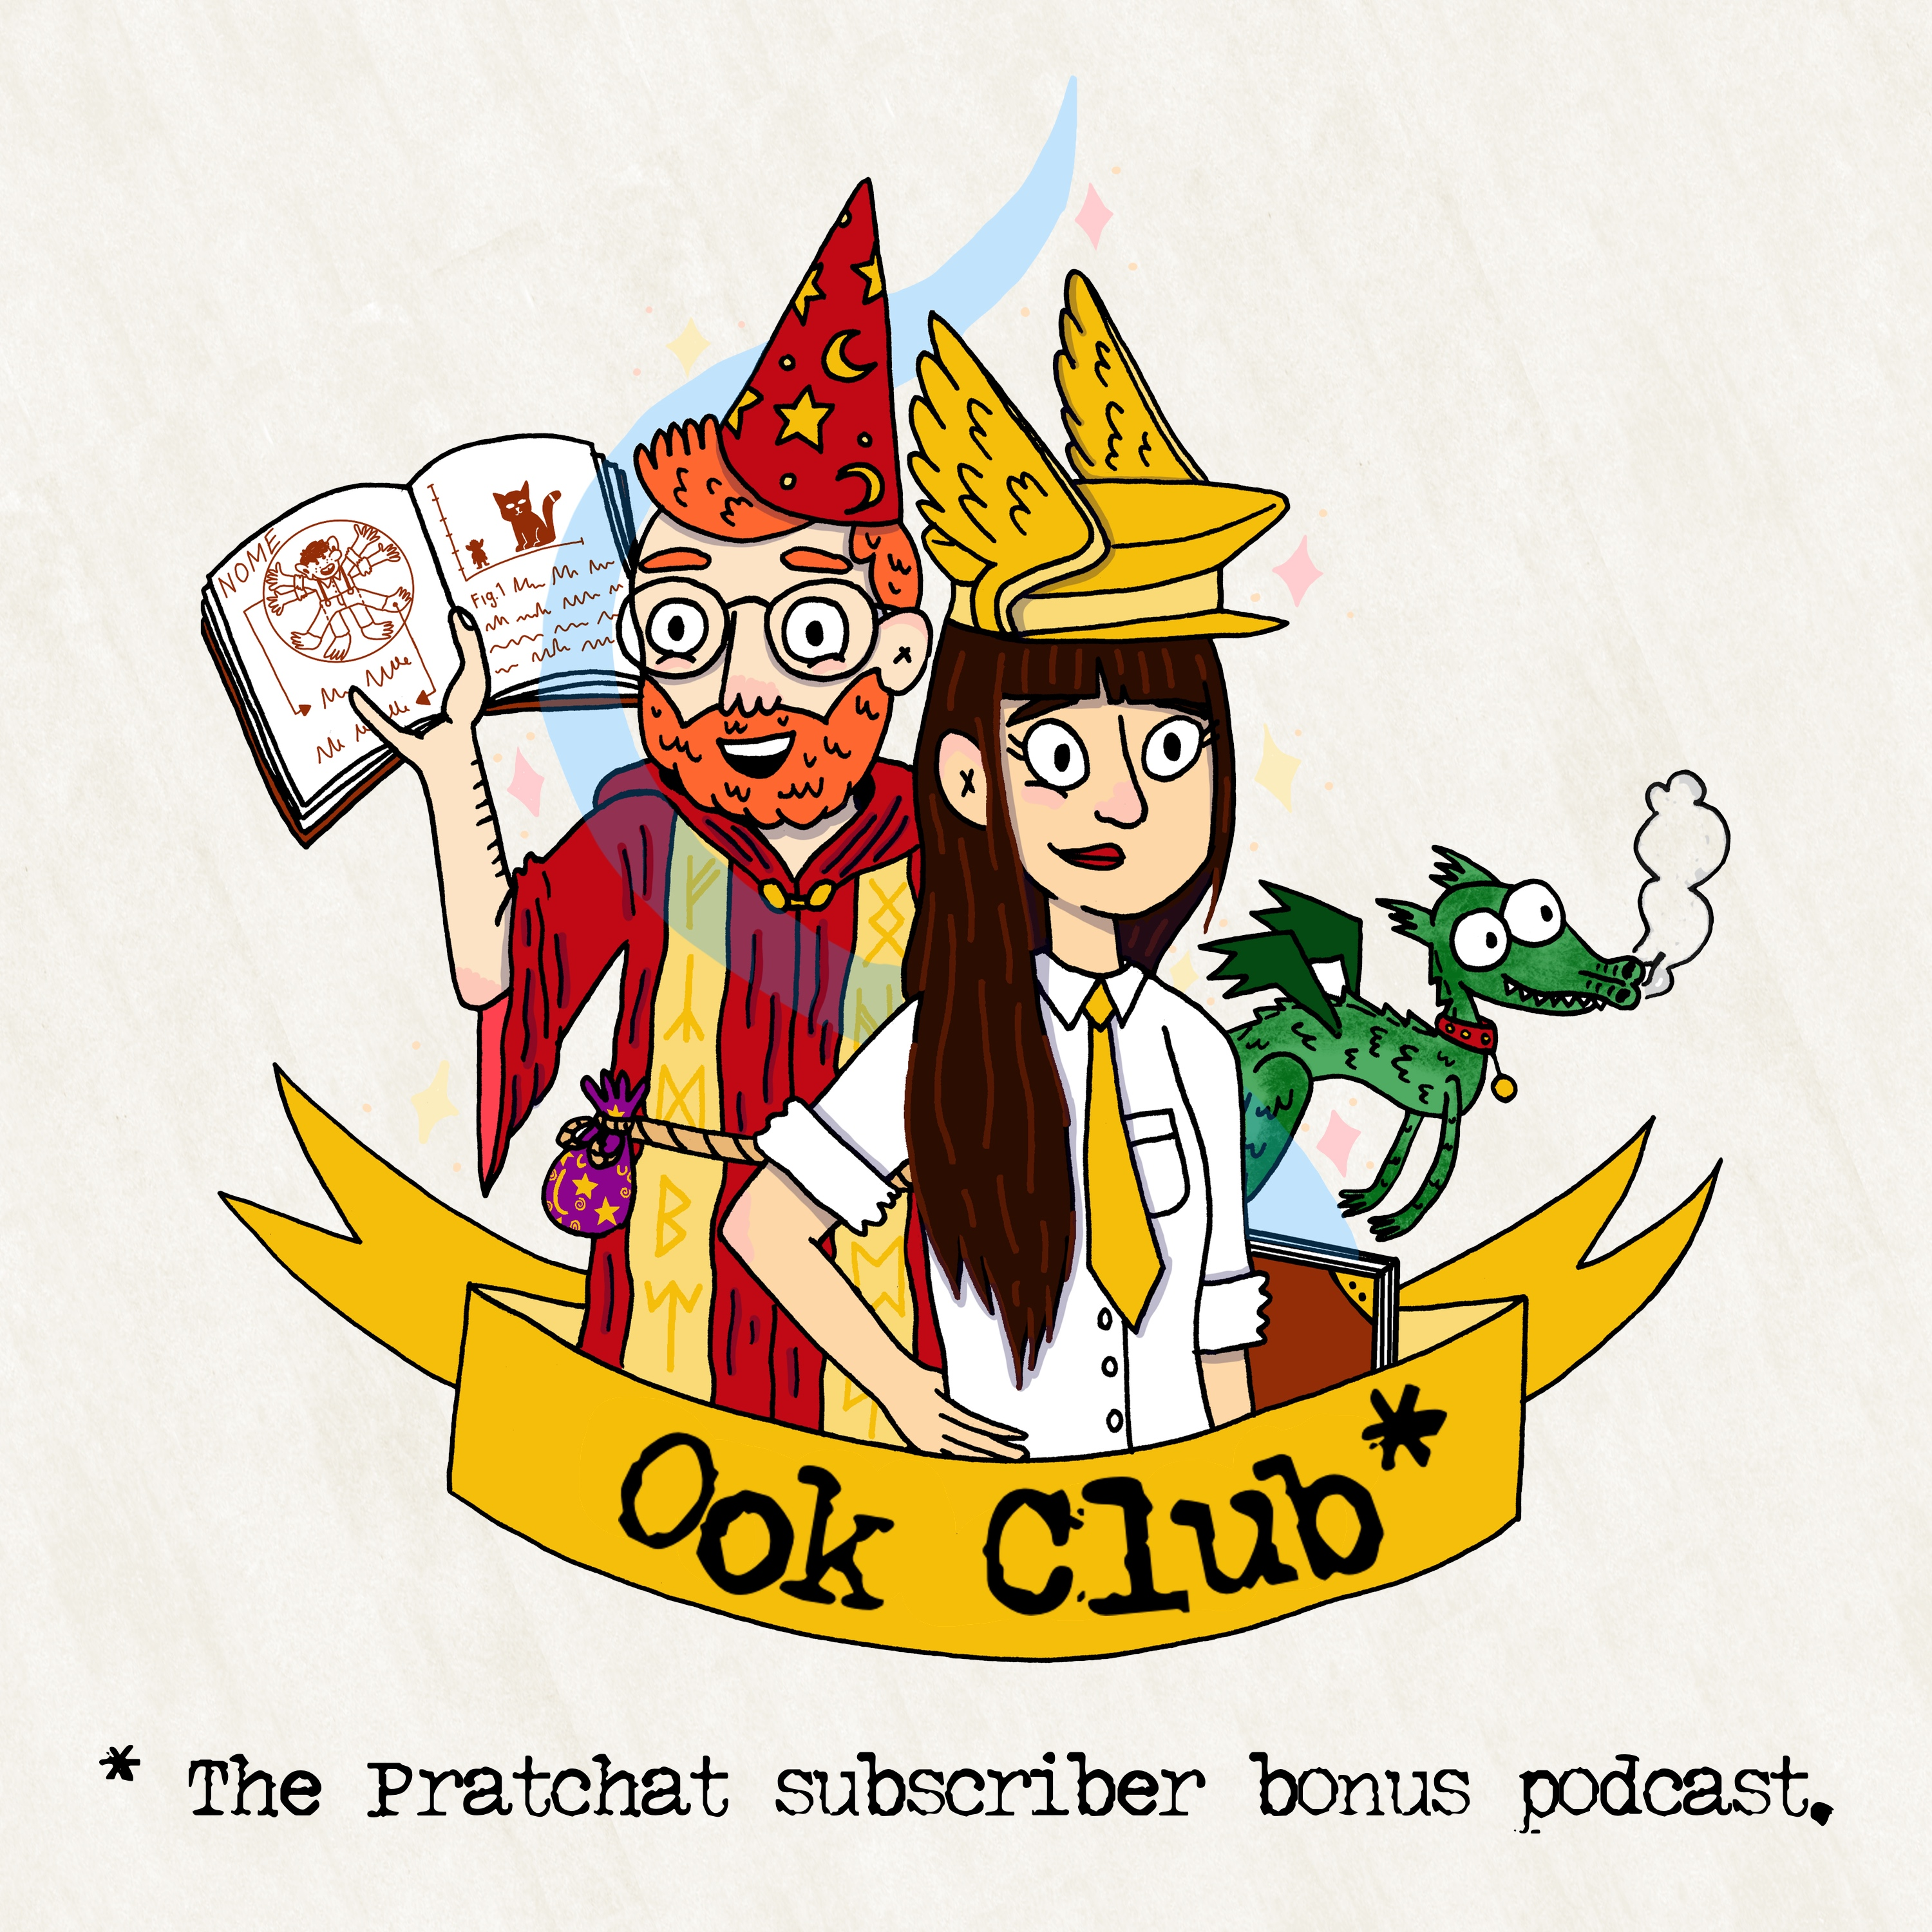 Ook Club - the Pratchat subscriber bonus podcast.